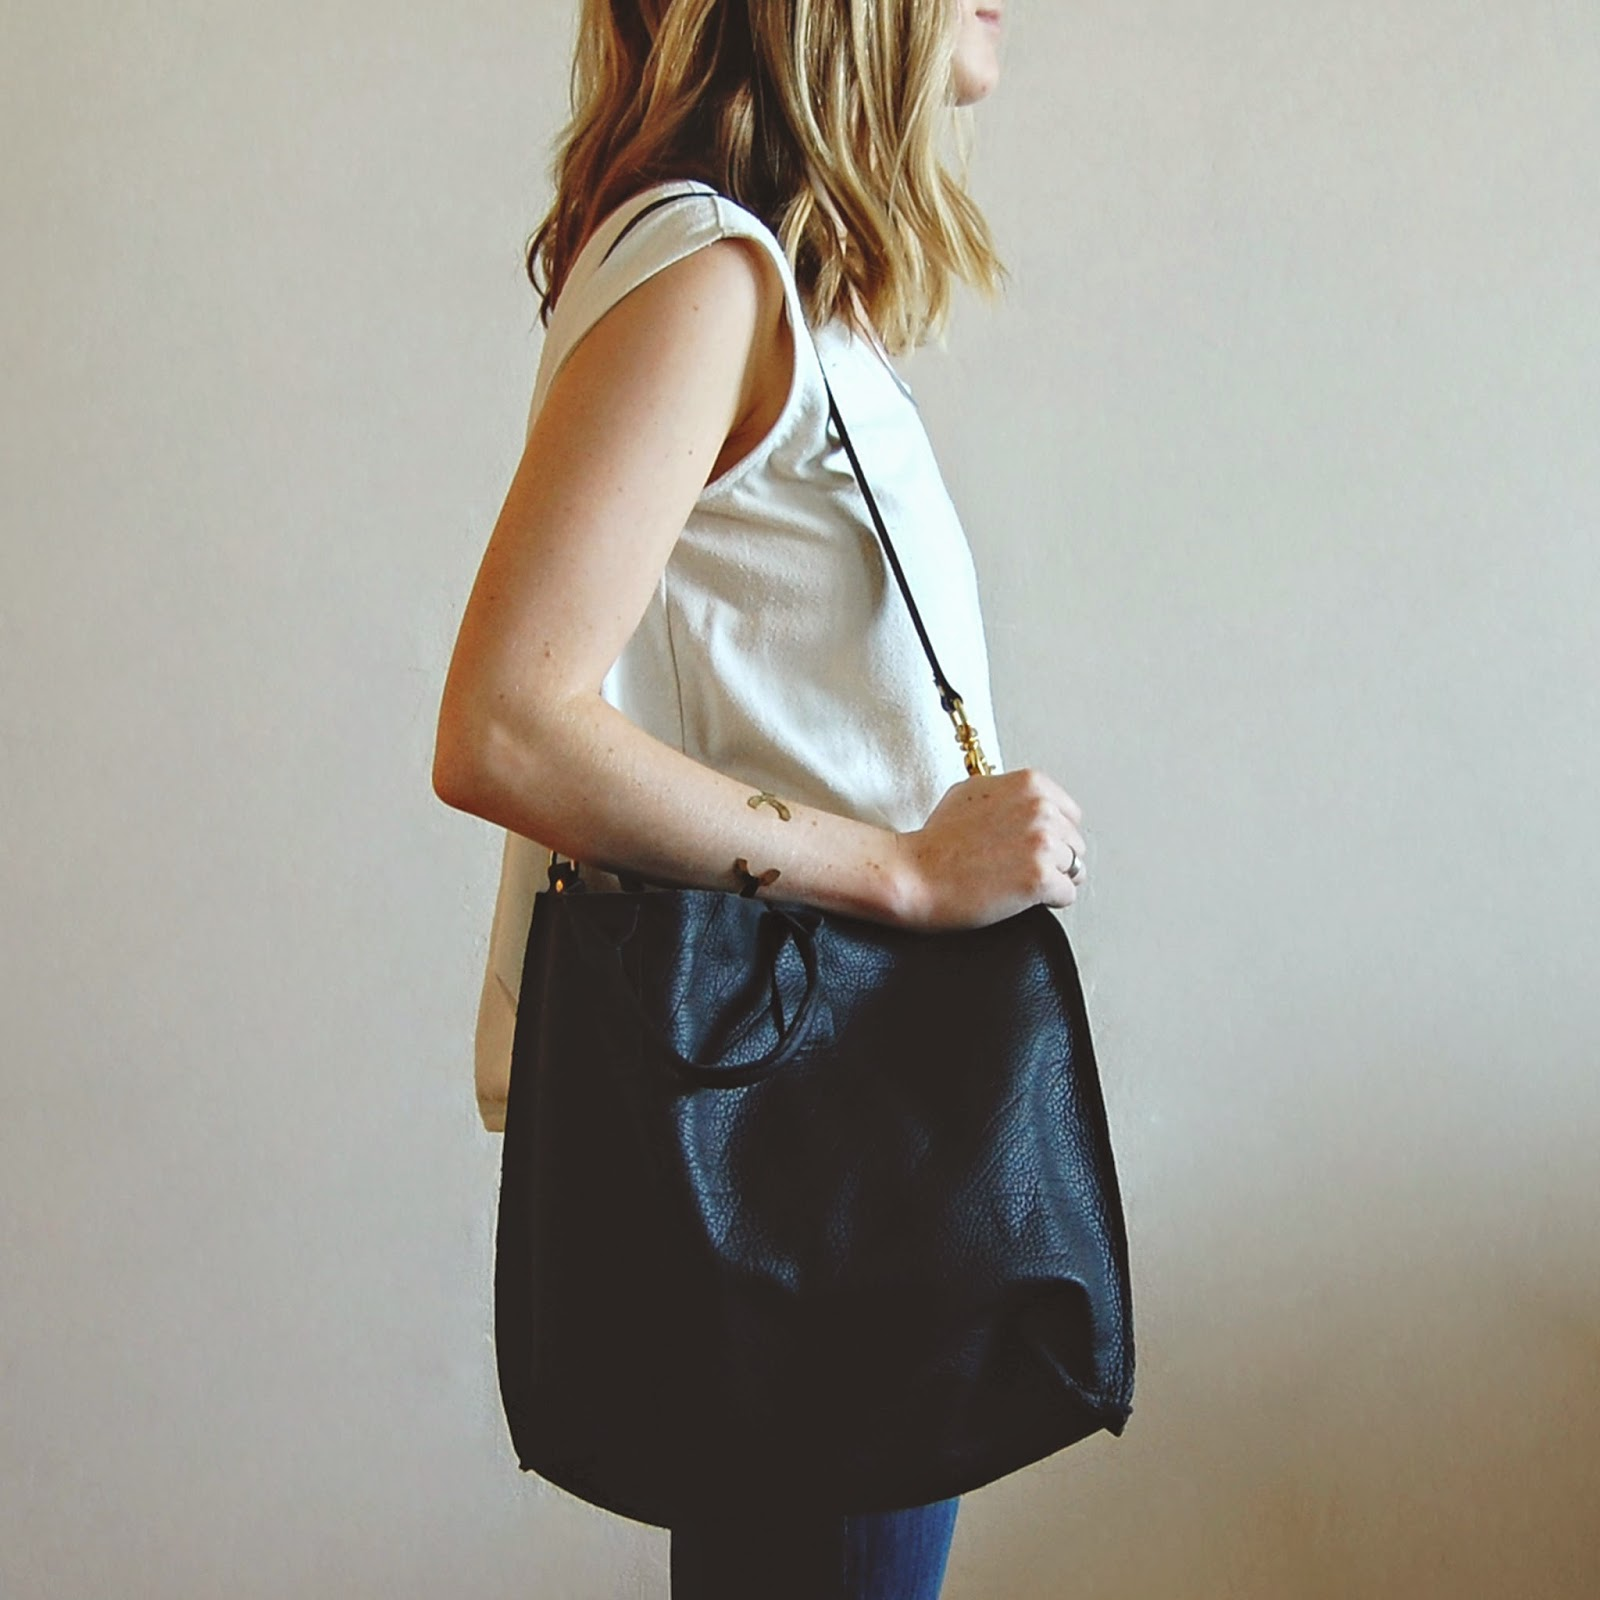 http://www.shopanomie.com/collections/accessories/products/east-west-courier-tote